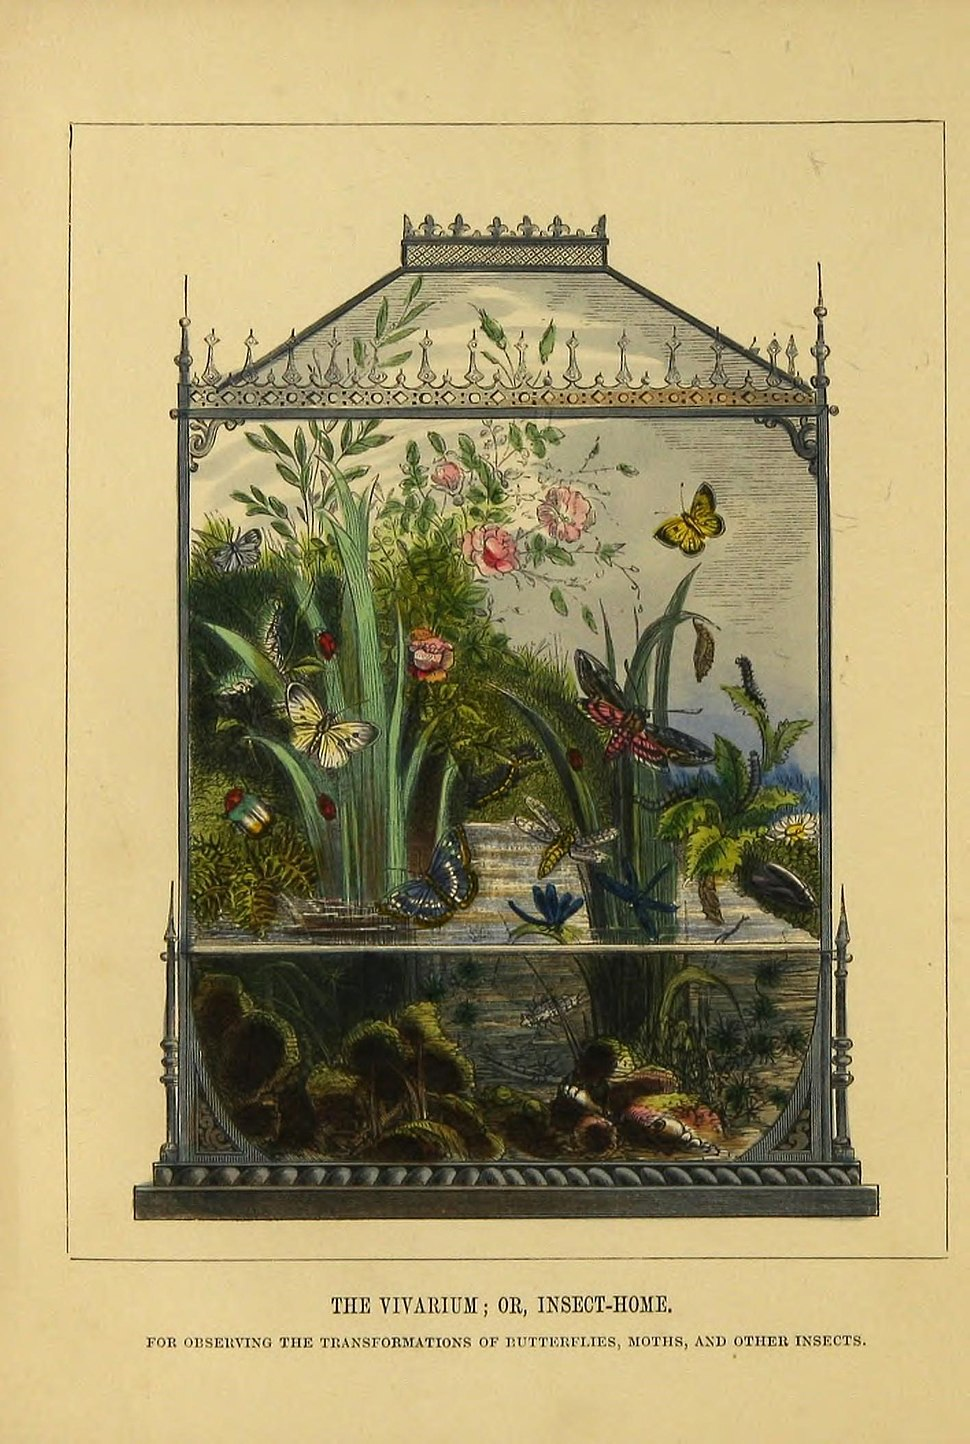 The butterfly vivarium (9445804504)